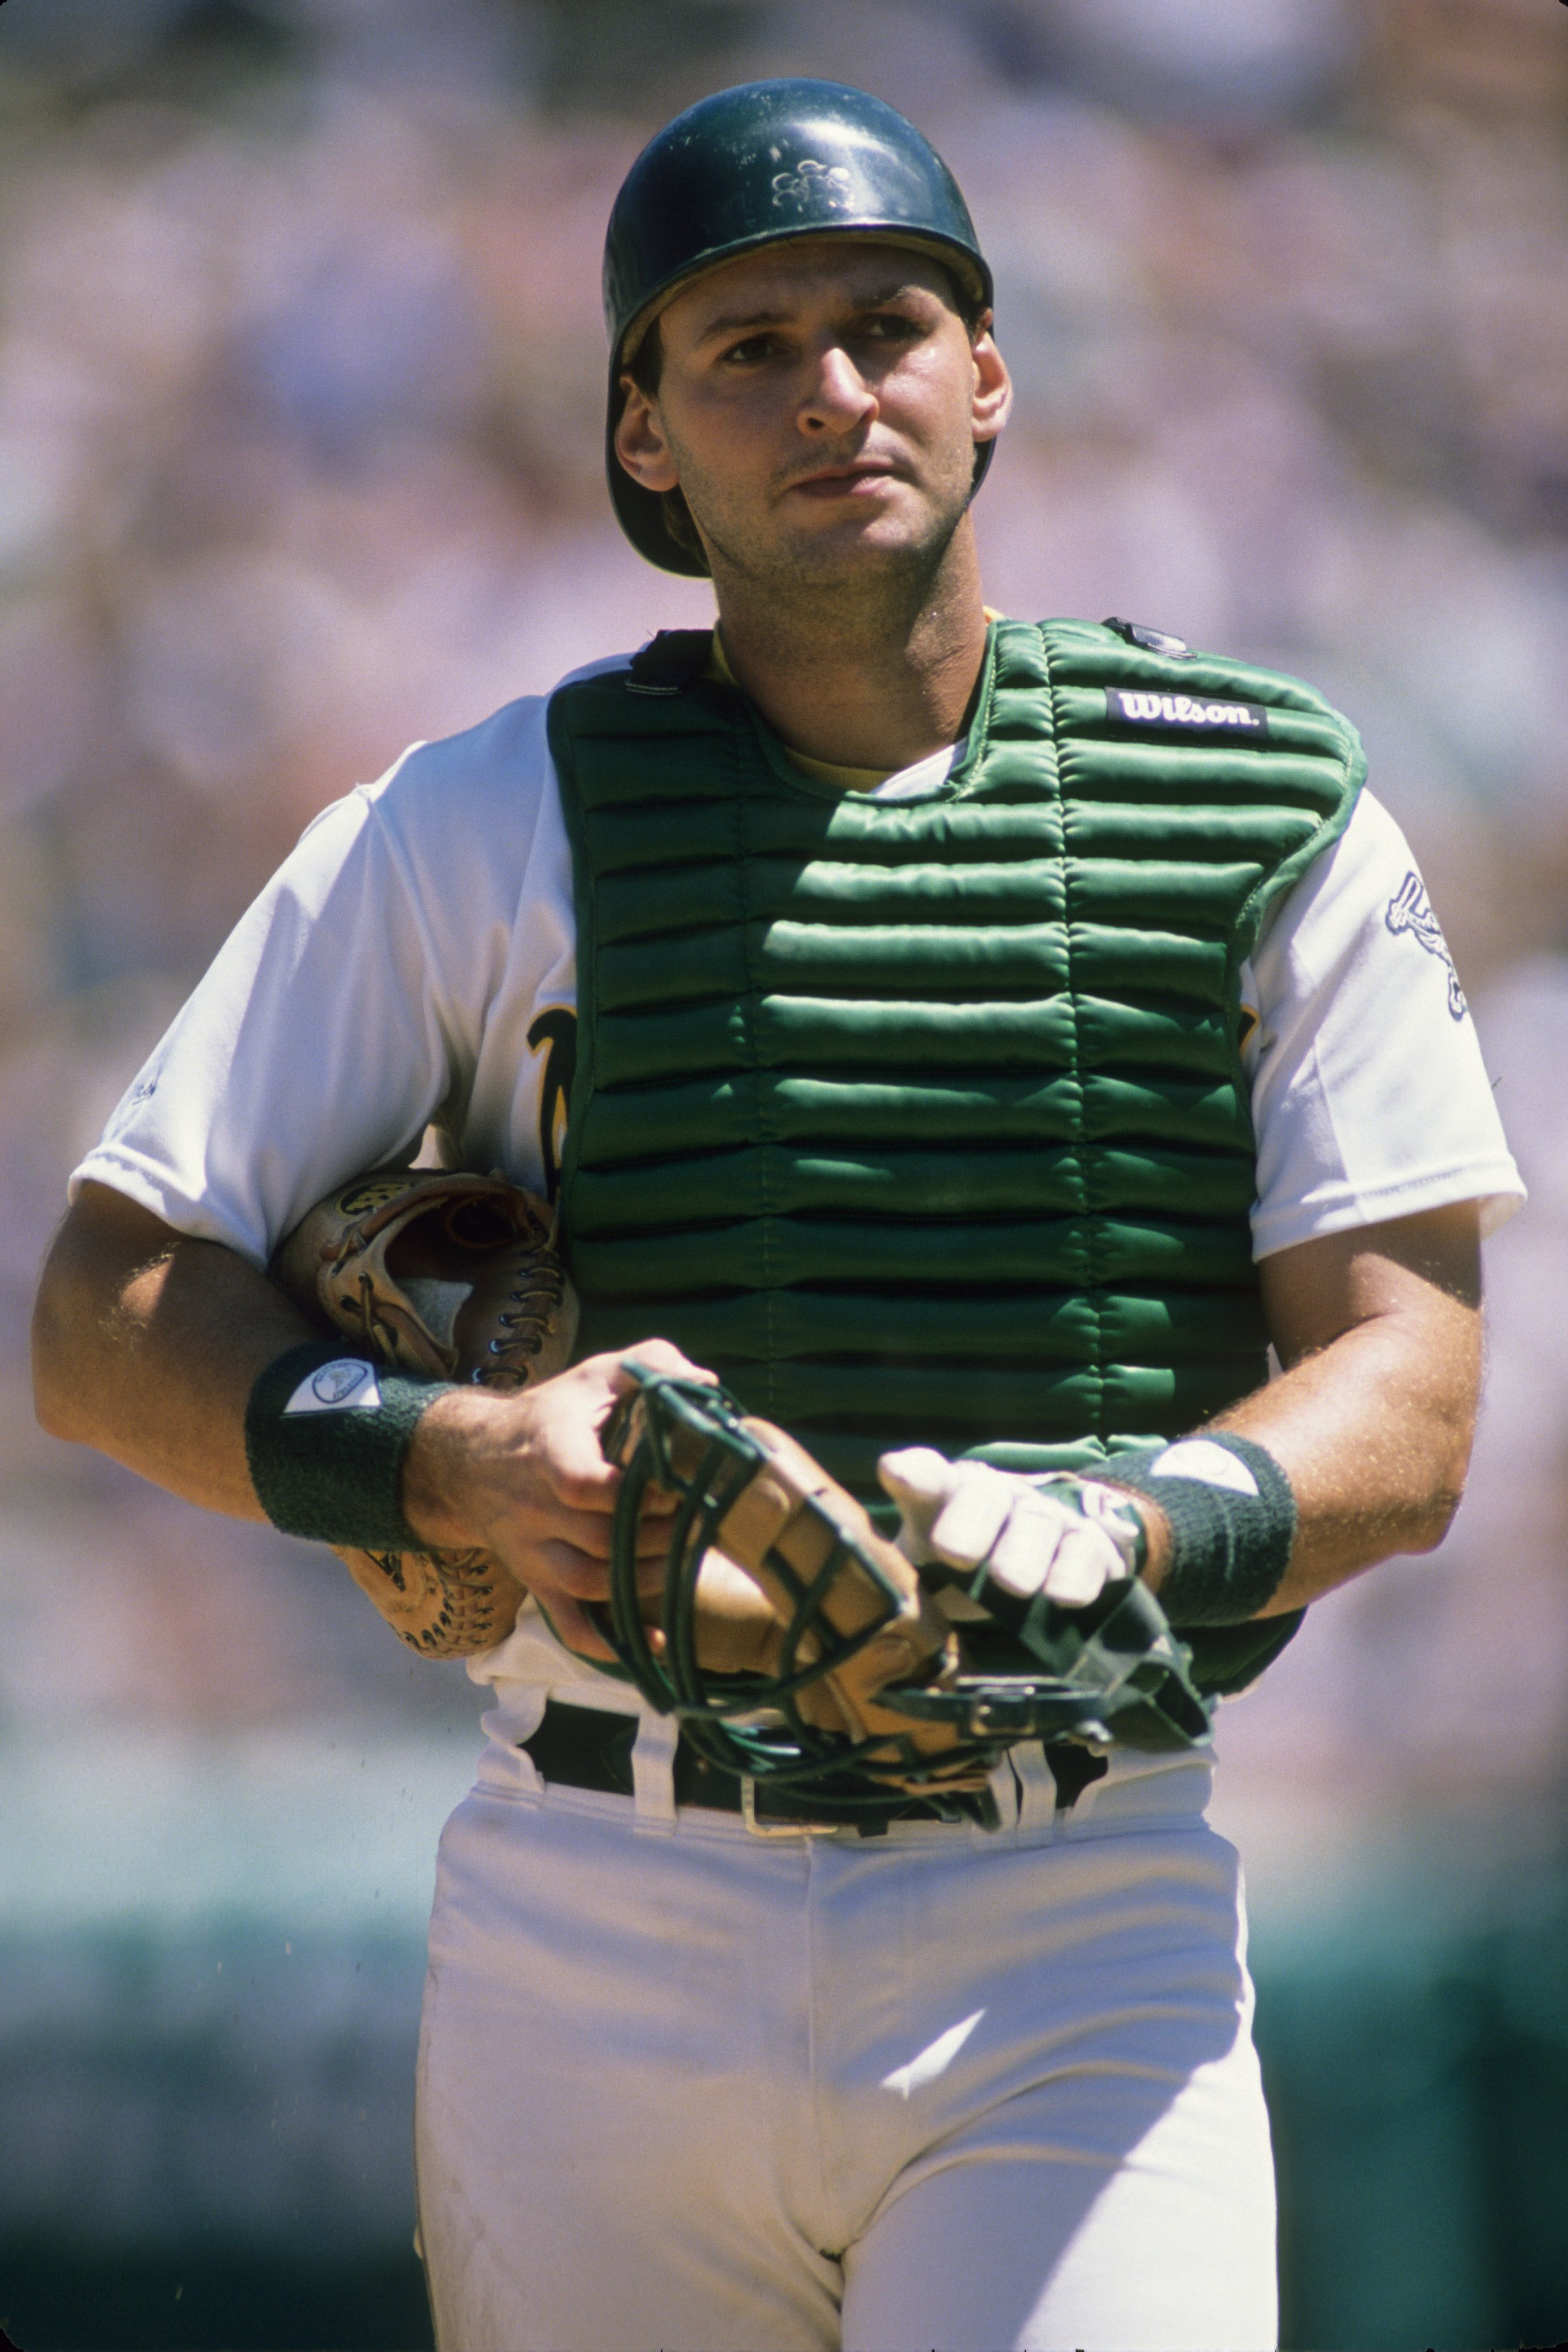 OAKLAND, CA - CIRCA 1988:  Catcher Terry Steinbach #36 of the Oakland Athletics looks on during an MLB game circa 1988 at Oakland-Alameda County Coliseum in Oakland, California. (Photo by Otto Greule Jr./Getty Images)